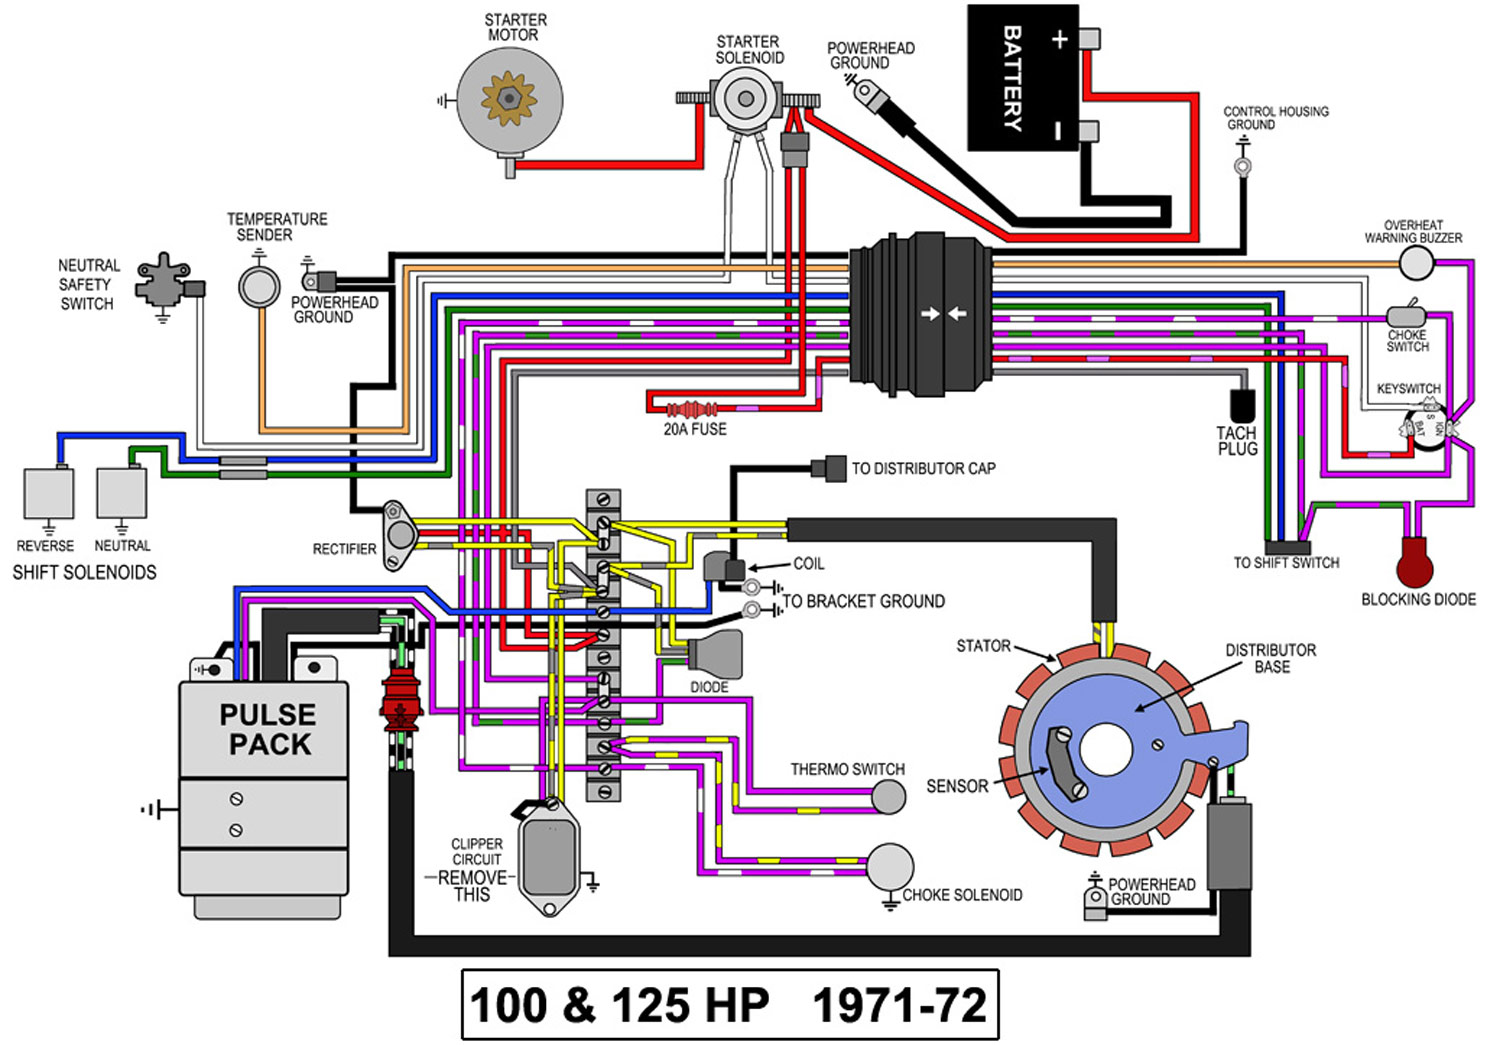 evinrude 115 ficht wiring diagram for motorcycle led lights hp schematic 5 library 1996 outboard 100 u0026 125